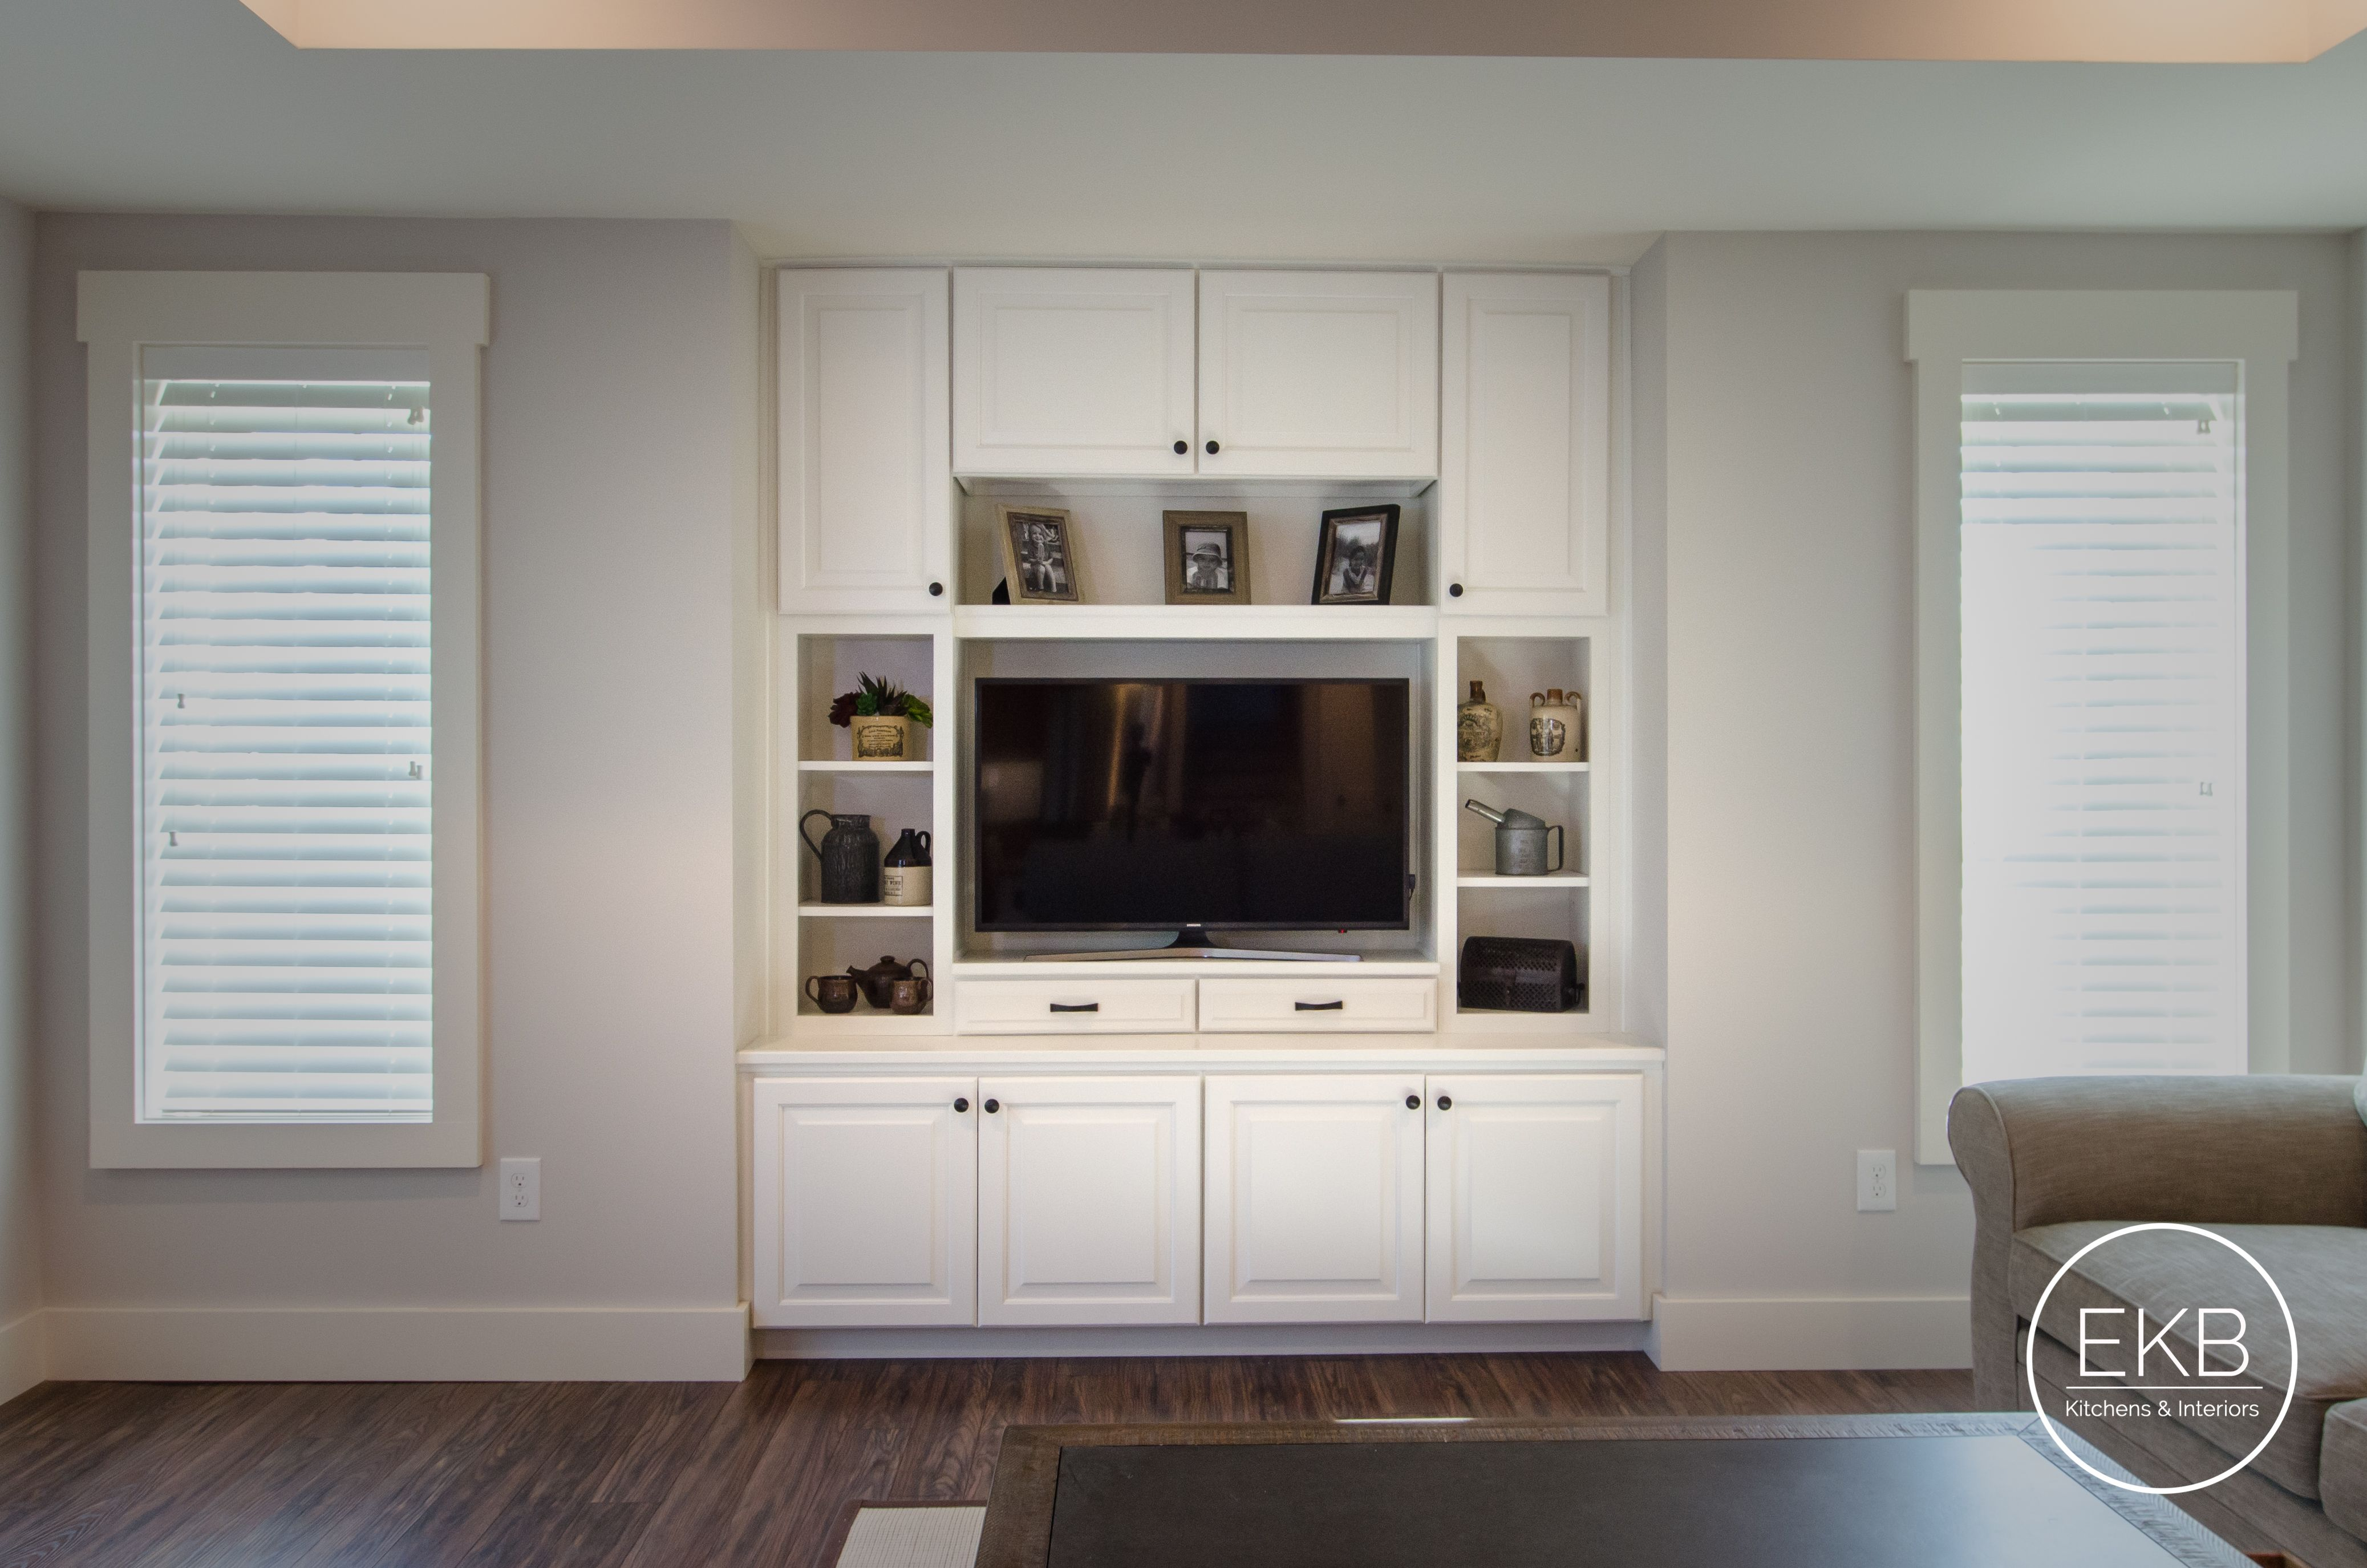 Pin by EKB Kitchens & Interiors on Builtins Installing